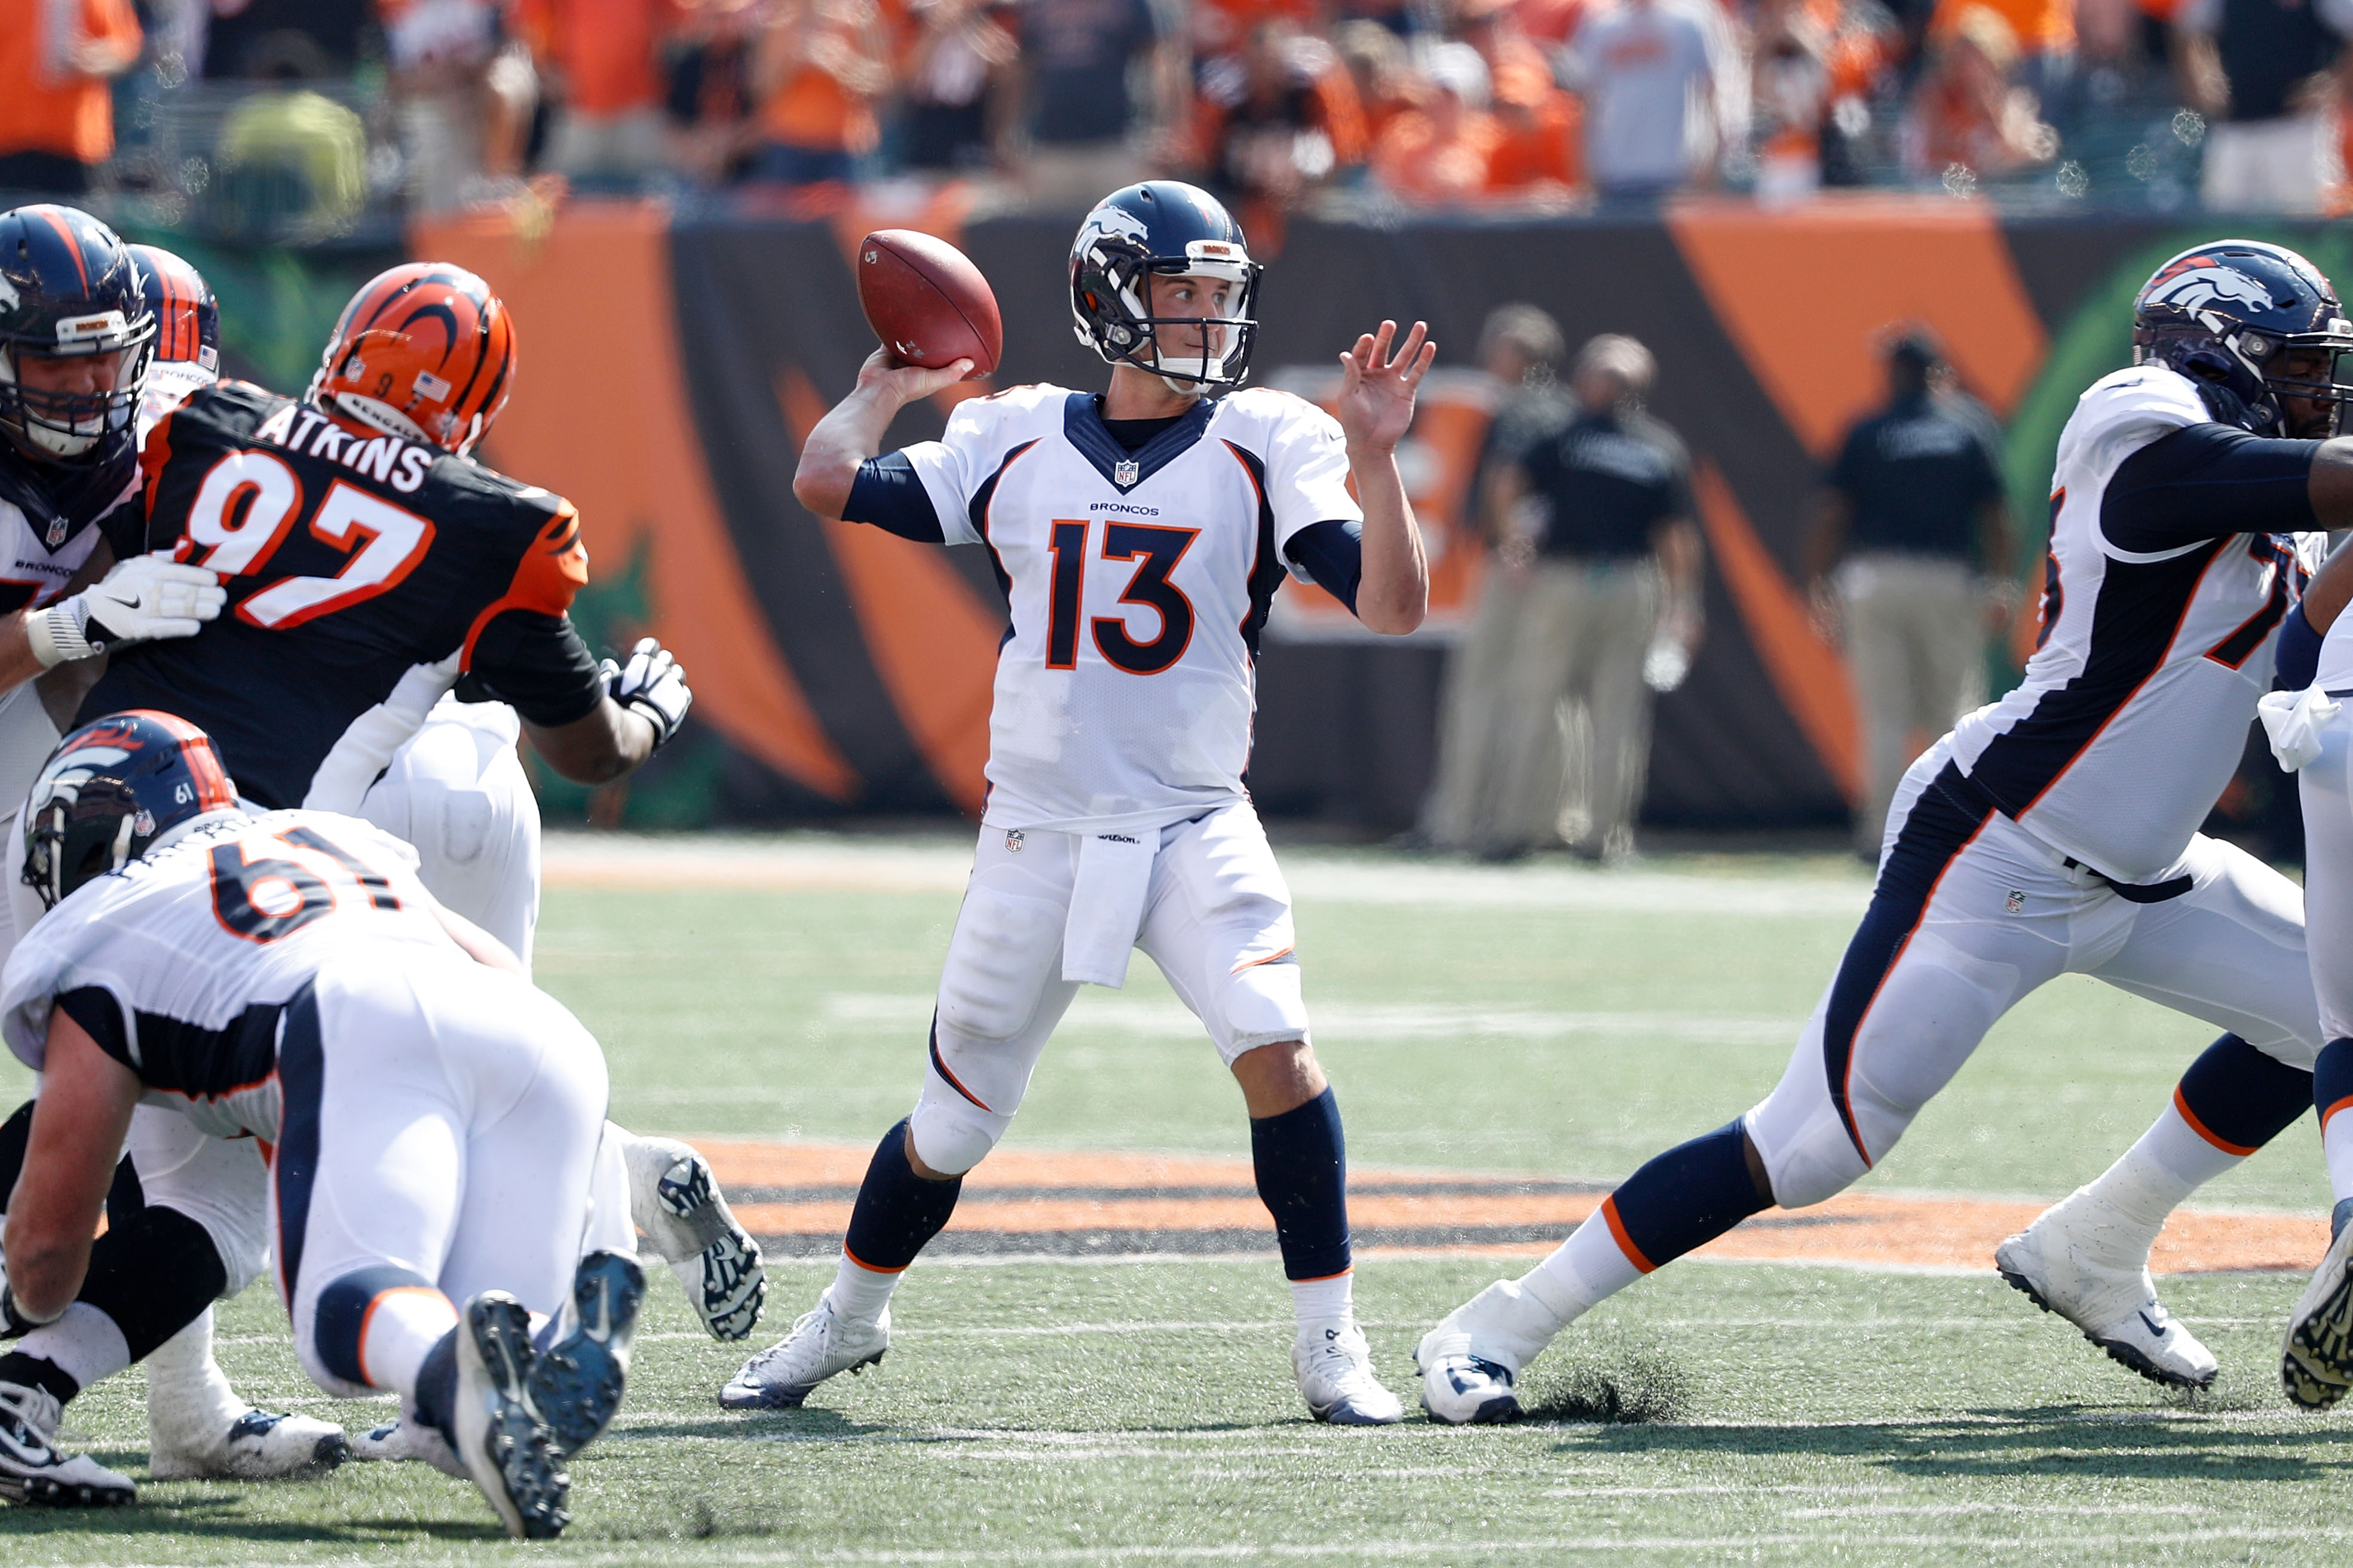 CINCINNATI, OH - SEPTEMBER 25: Trevor Siemian #13 of the Denver Broncos throws a pass during the second quarter of the game against the Cincinnati Bengals at Paul Brown Stadium on September 25, 2016 in Cincinnati, Ohio. (Photo by Joe Robbins/Getty Images)